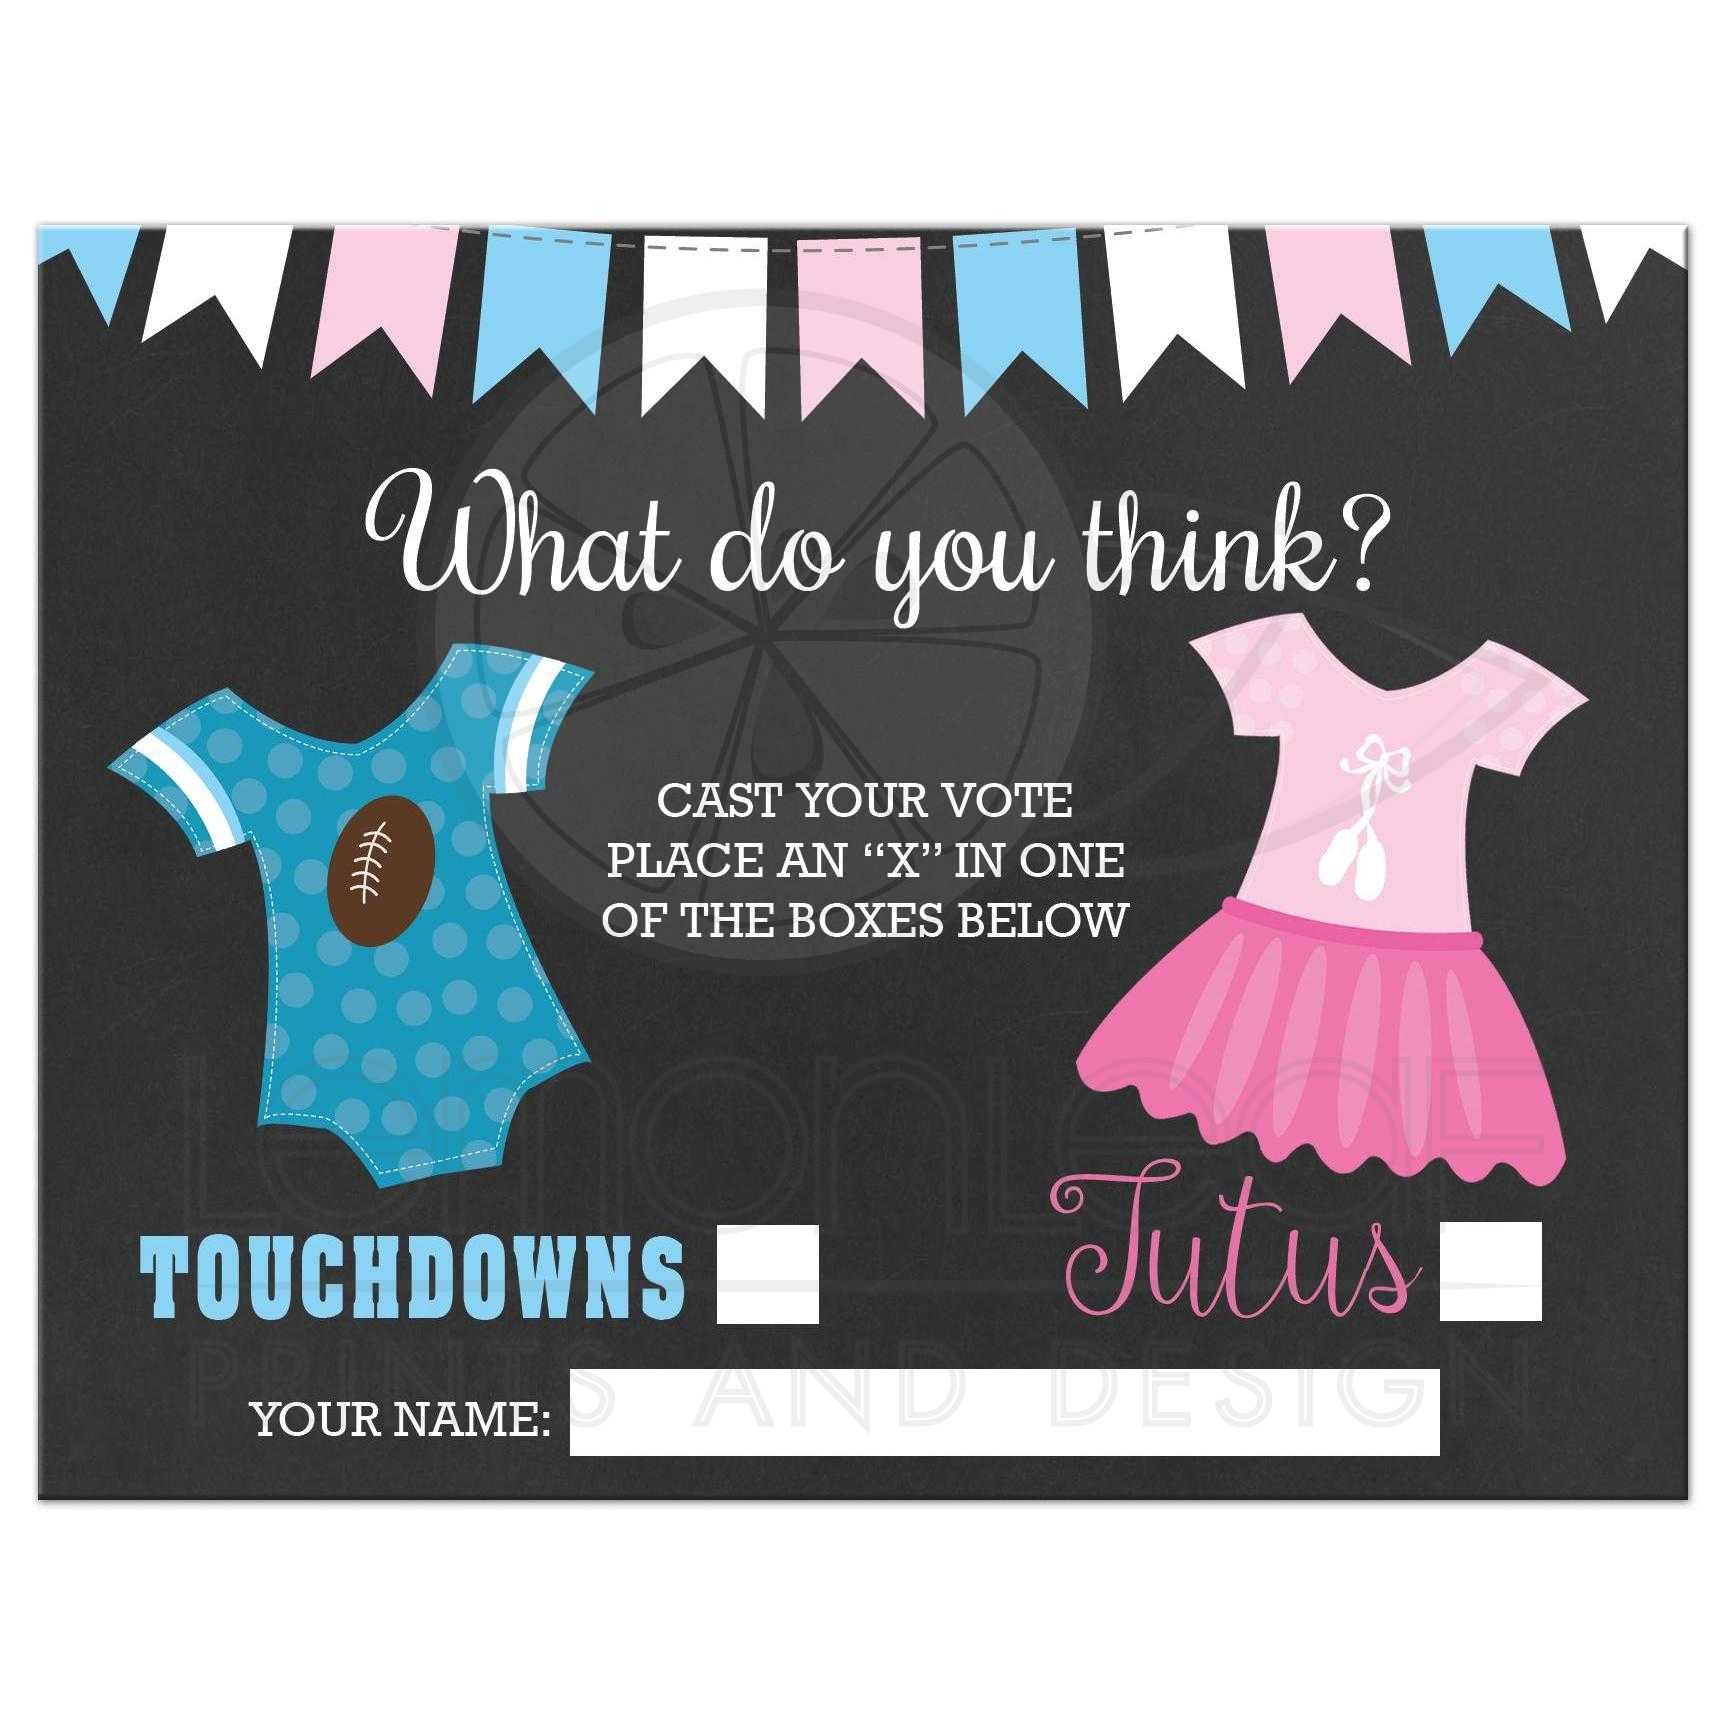 Super Touchdowns or Tutus Gender Reveal Baby Shower Voting Ballot HI02